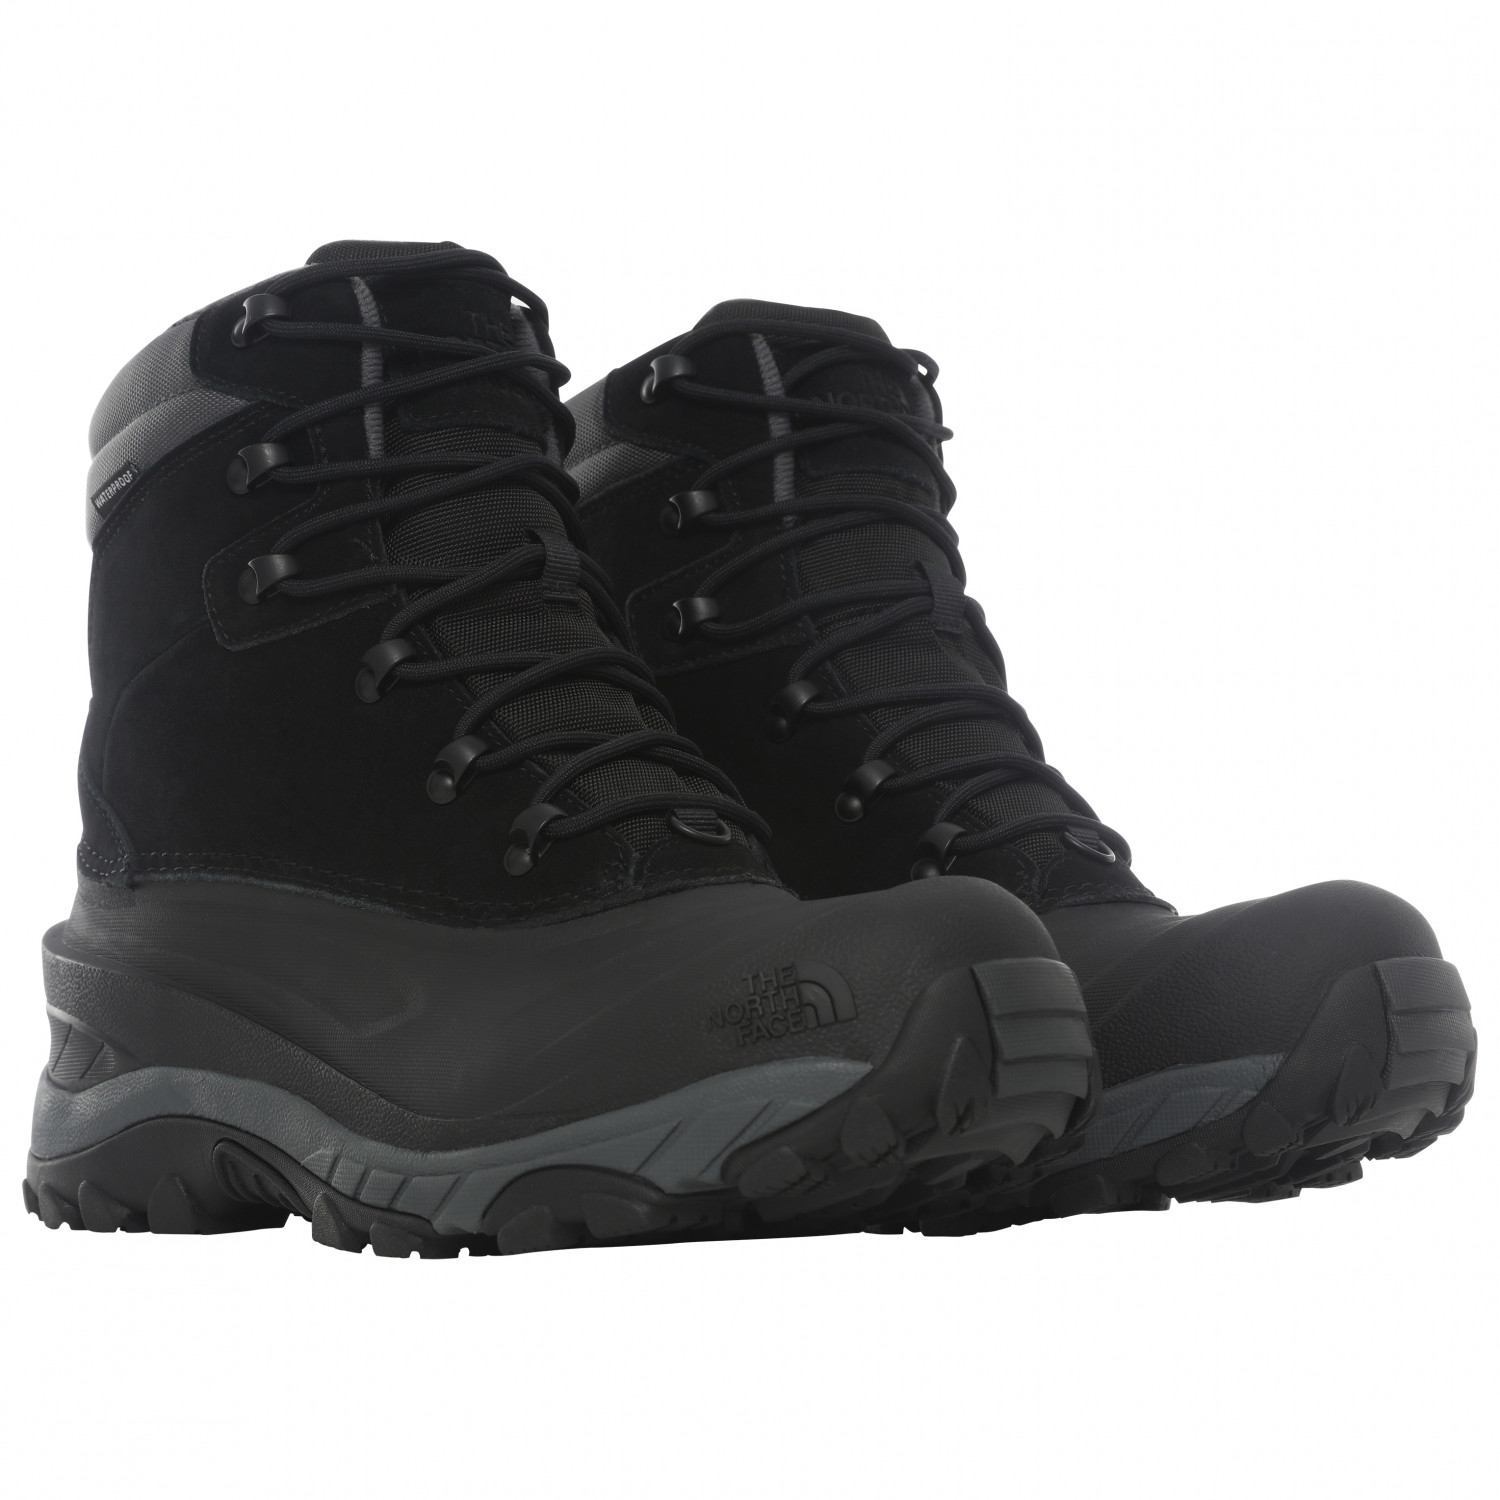 North Face Chilkat IV - Winter boots